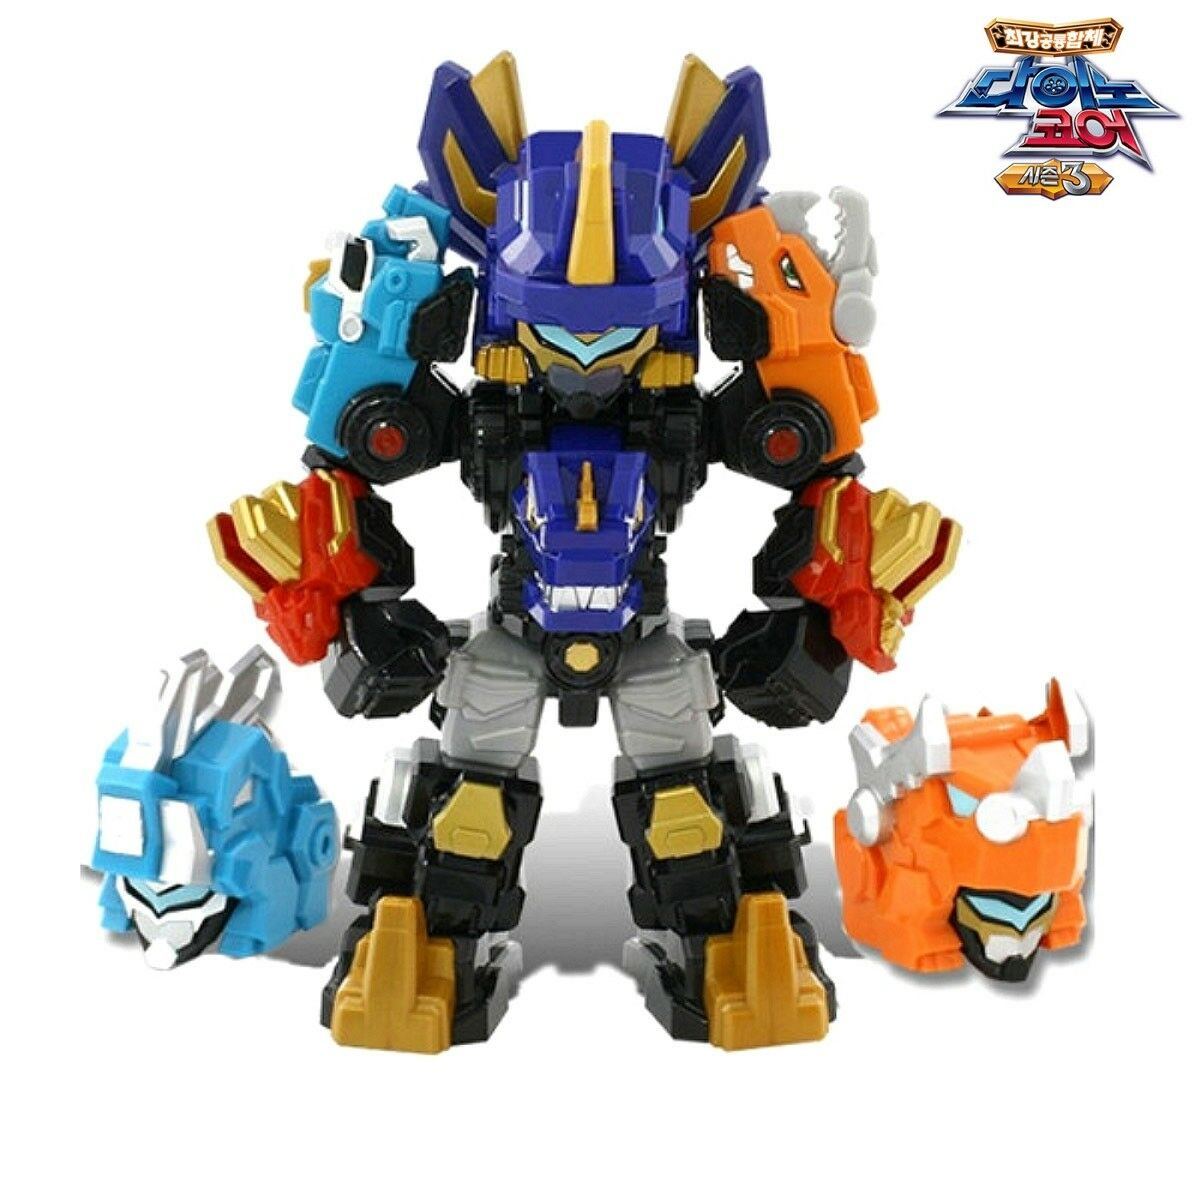 DinoCore Mini Ultra D Saber 3 Stg Transformable Robot Action Figure 8  + Gift